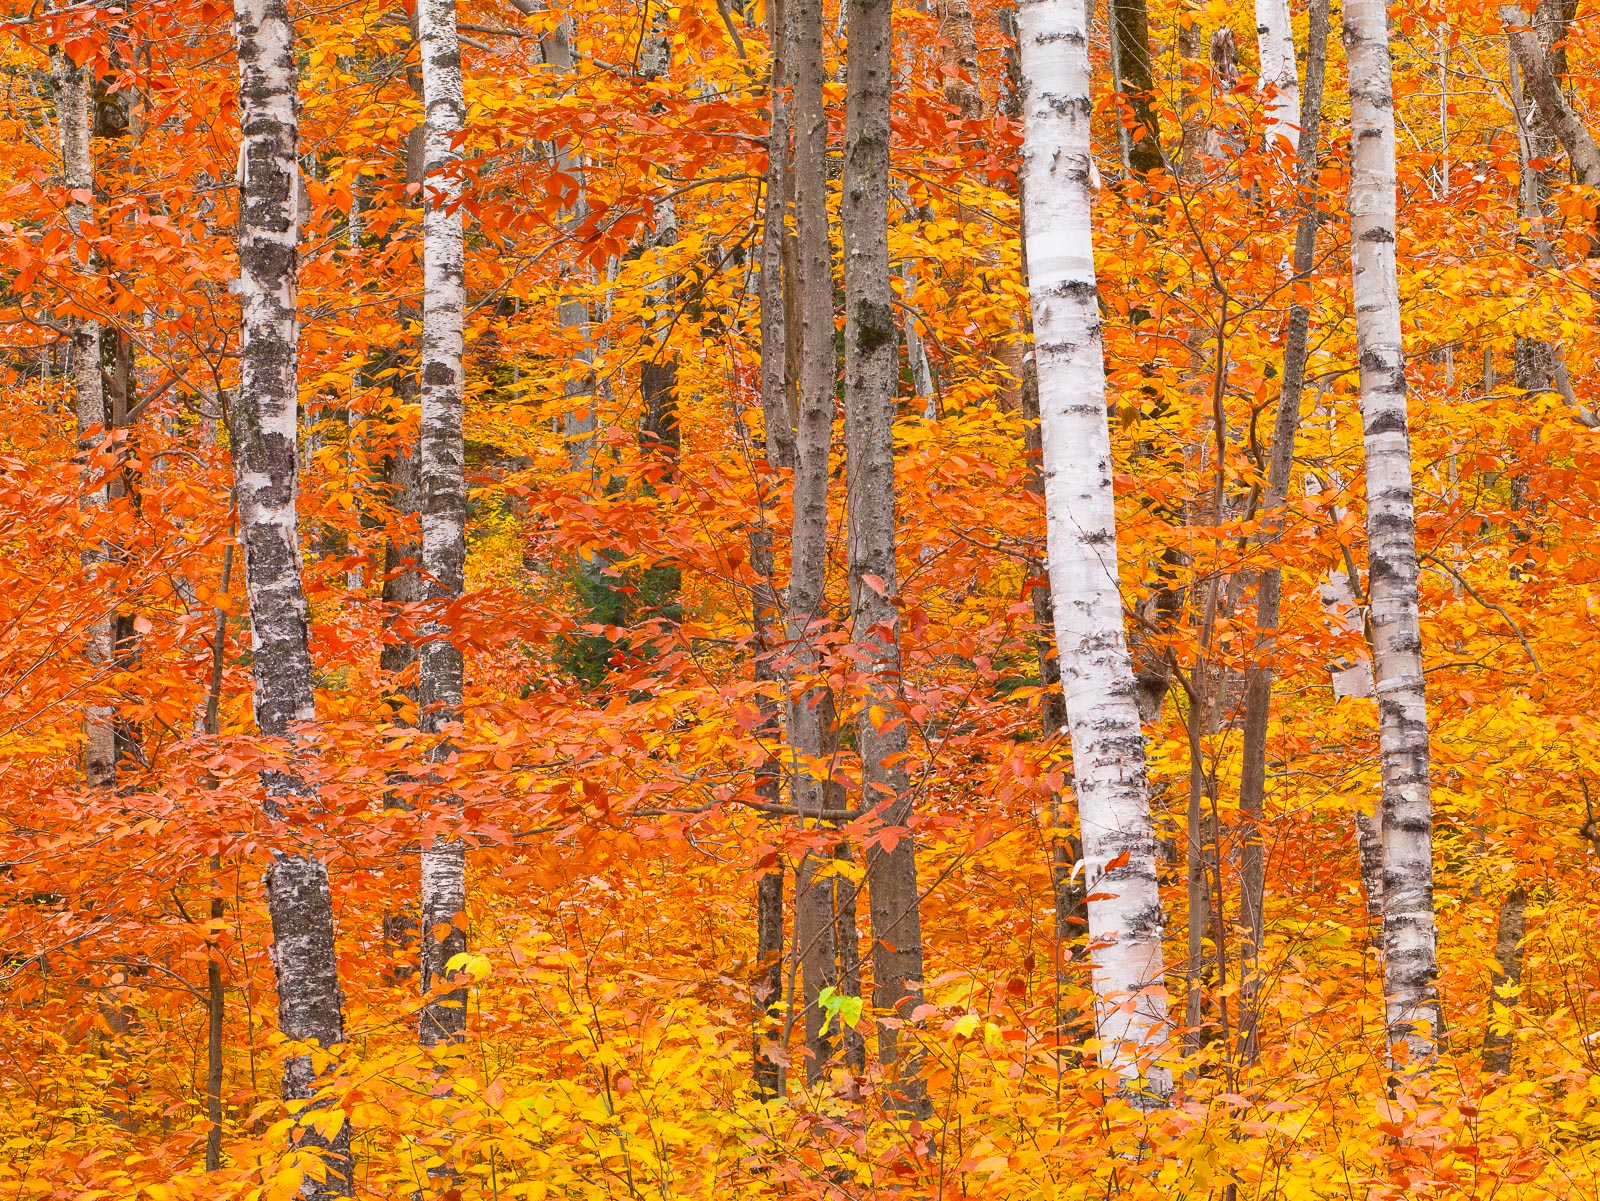 White on Fire,Autumn,Birch Tree,Crawford Notch,Forest,New England,Red,Trees,White Mountains,horizontal,orange, photo